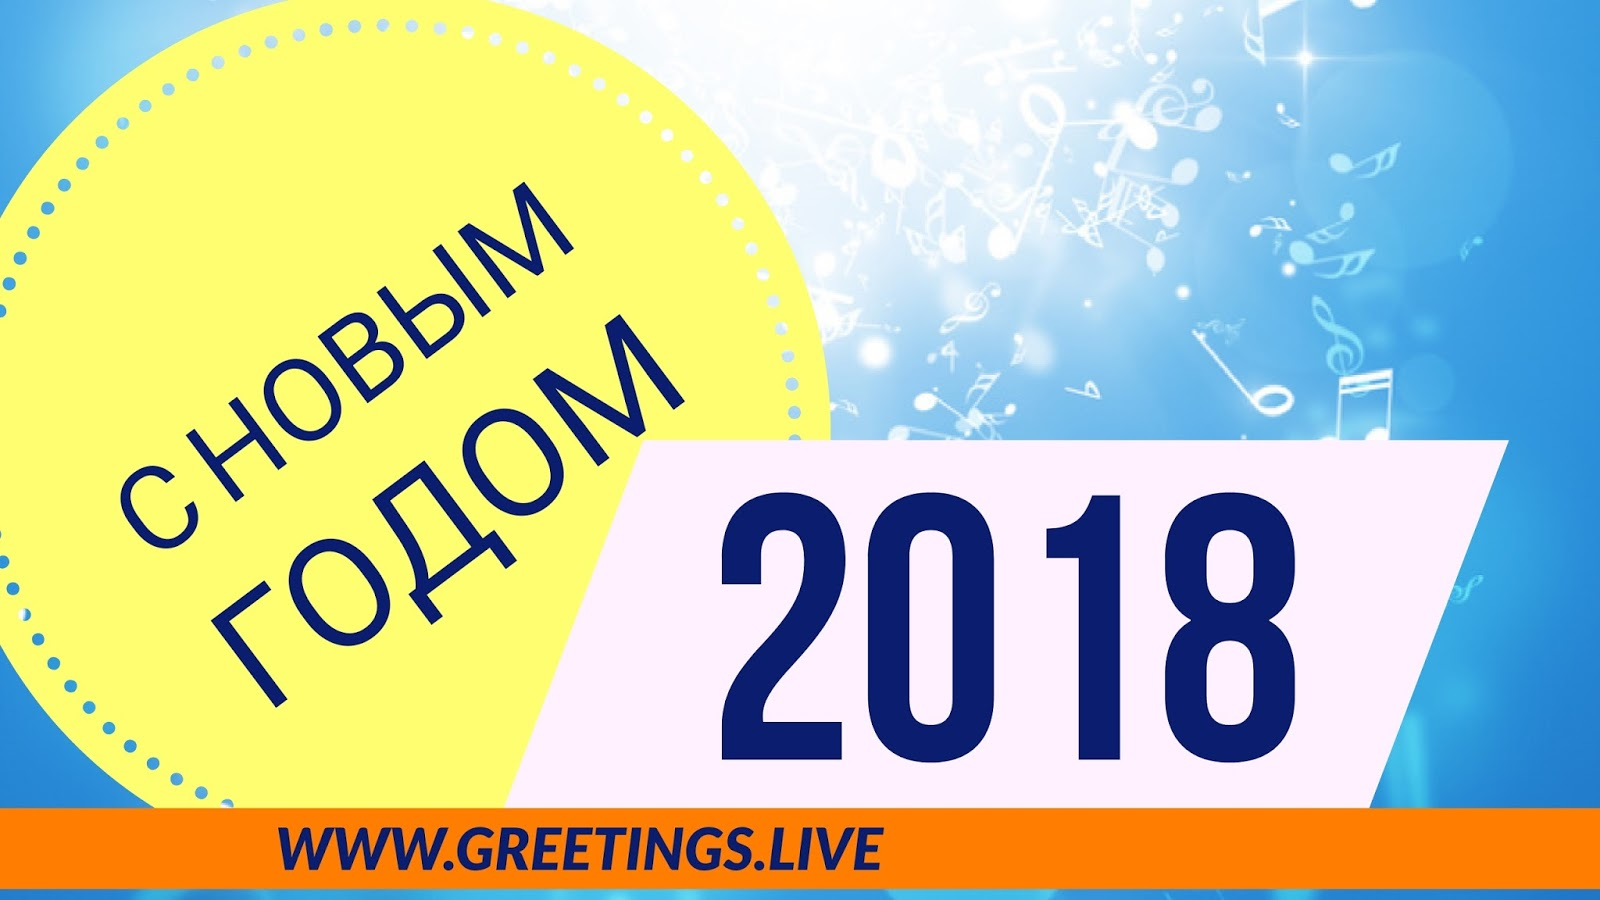 Greetingsve hd images love smile birthday wishes free download good new year 2018 wishes in russian language kristyandbryce Image collections